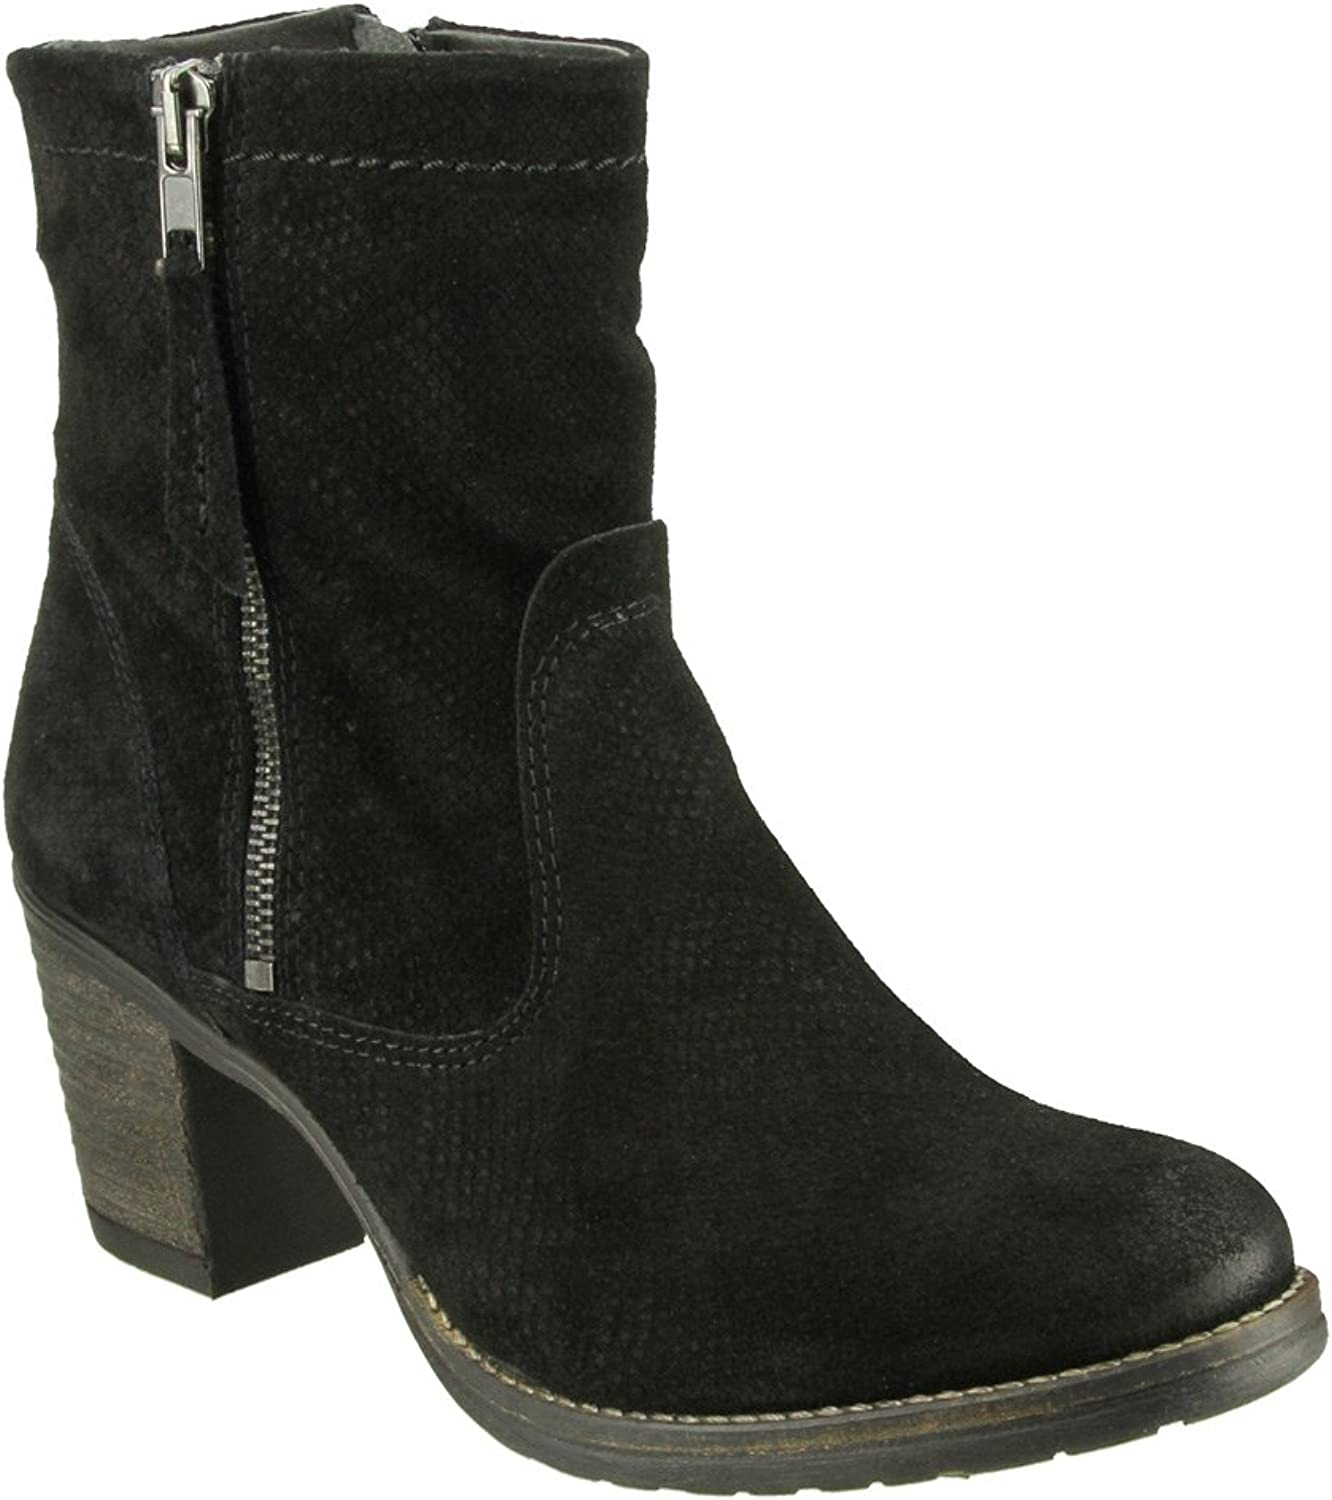 Taos Women's Standout Black Embossed Suede Boot 41 M EU  10-10.5 B(M) US